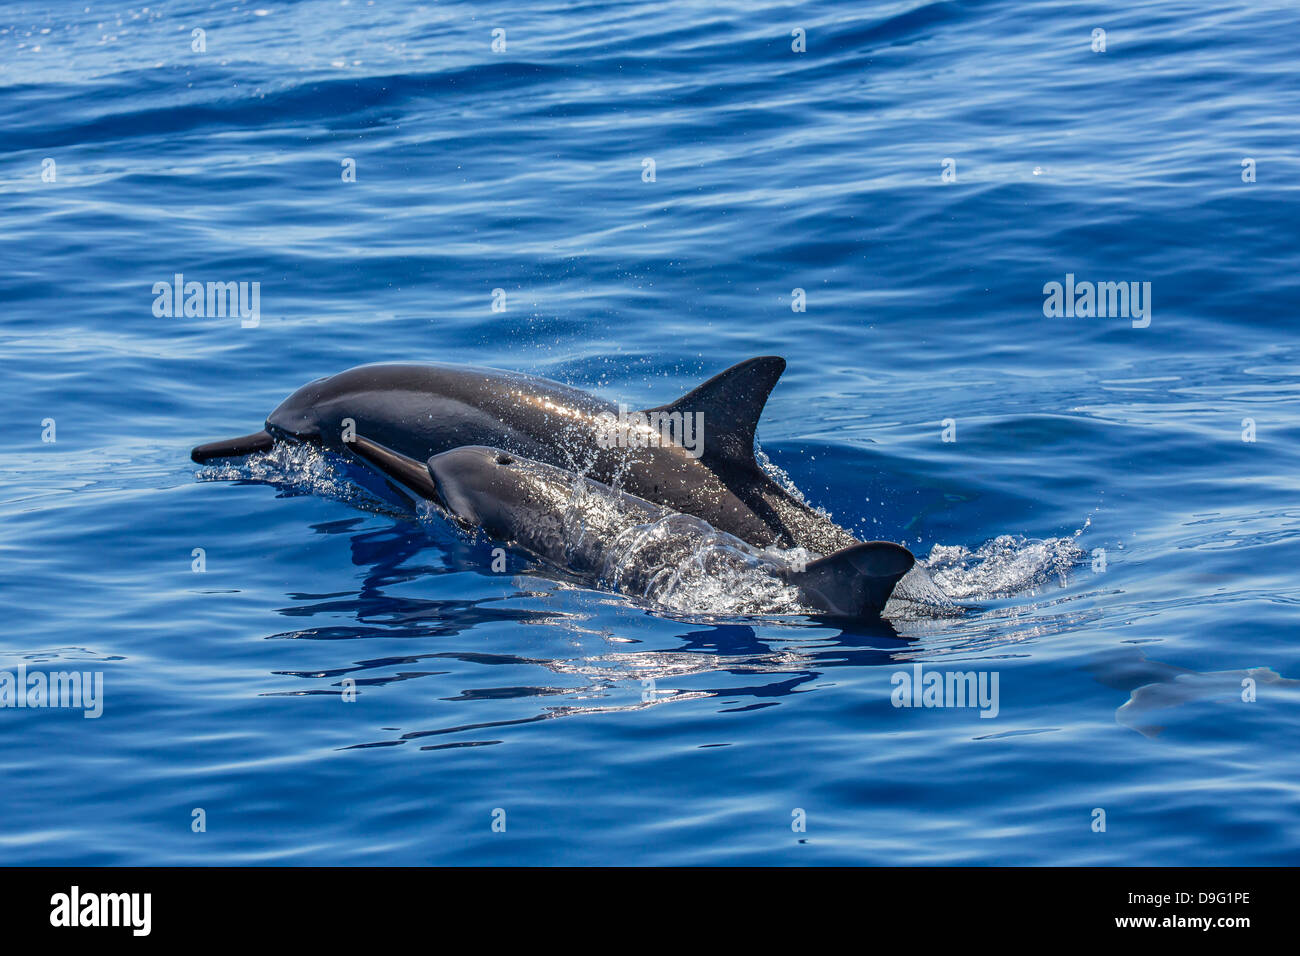 Hawaiian spinner dolphins (Stenella longirostris), AuAu Channel, Maui, Hawaii, United States of America - Stock Image